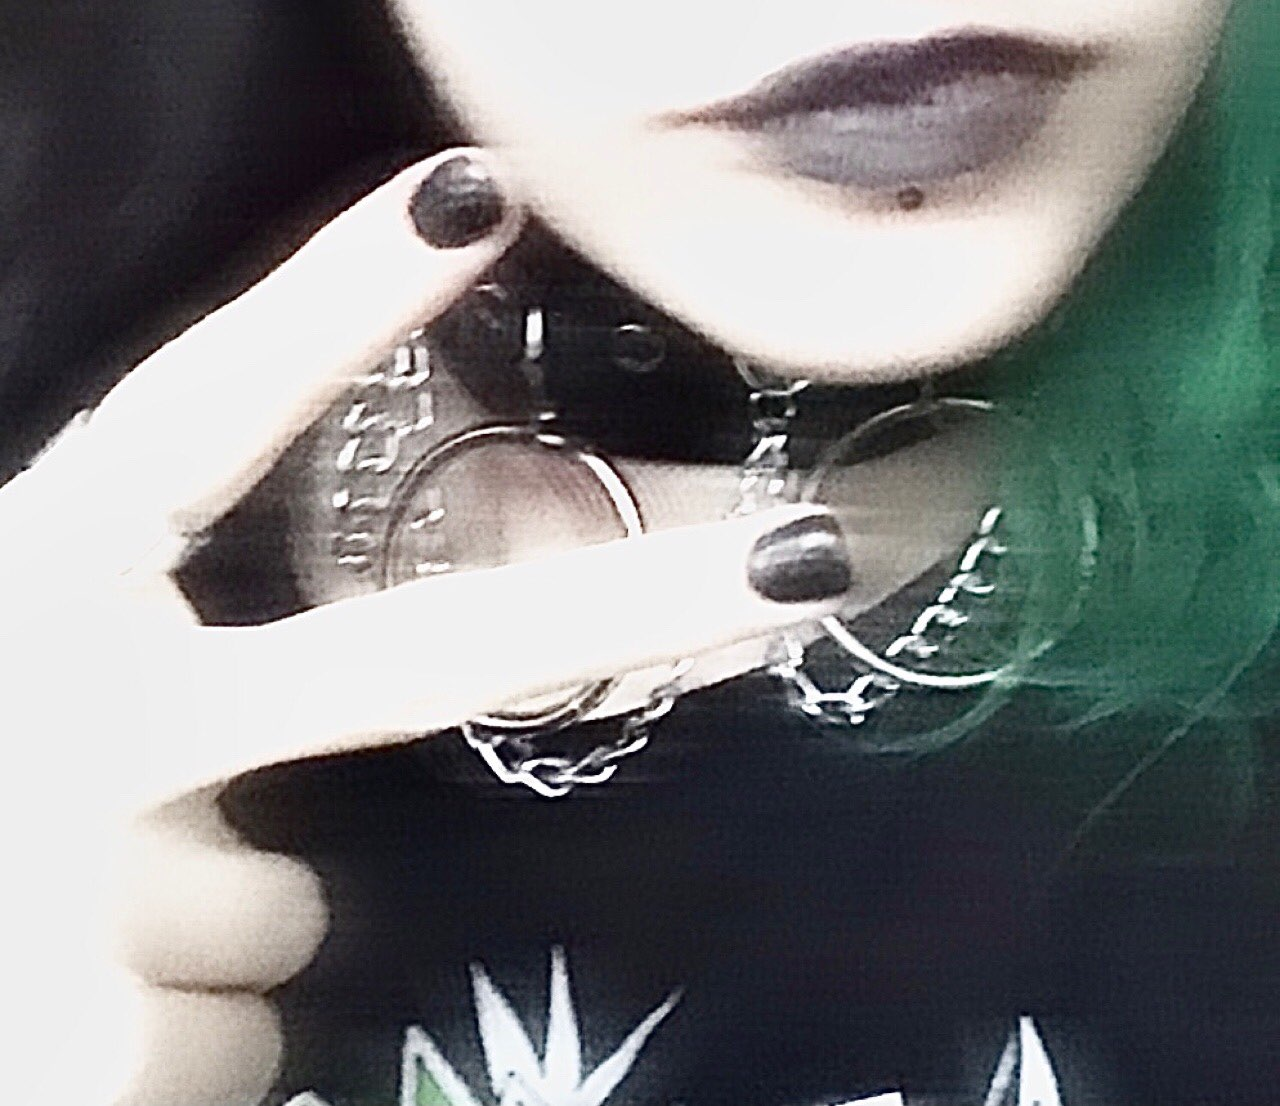 Chokerwith Chains and rings E-girl Pastel gothic photo review